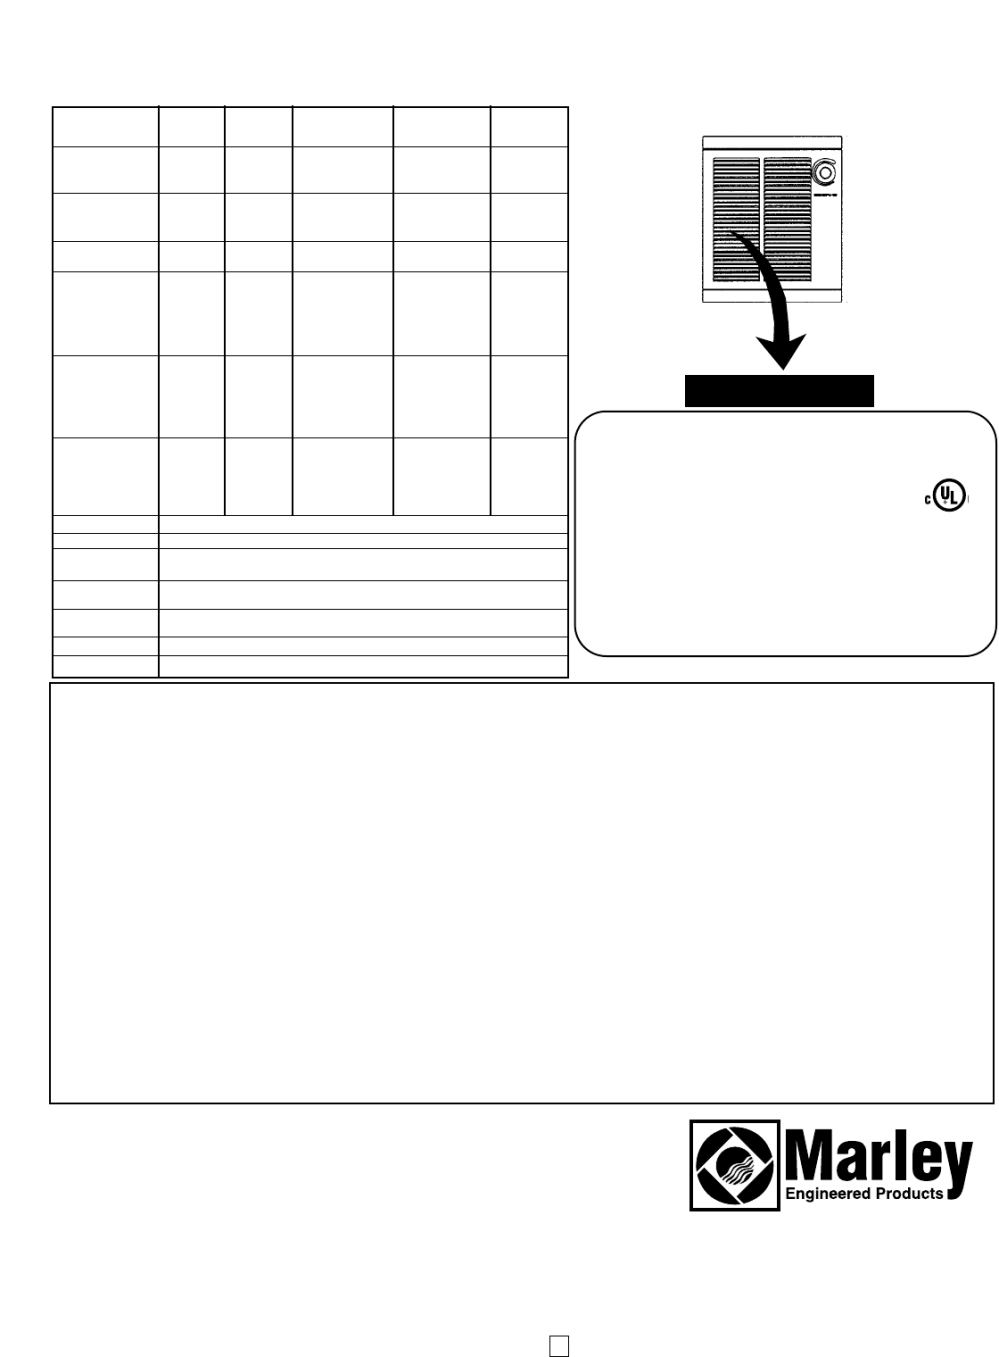 medium resolution of marley engineered products sra ds sra ds series model b b important information